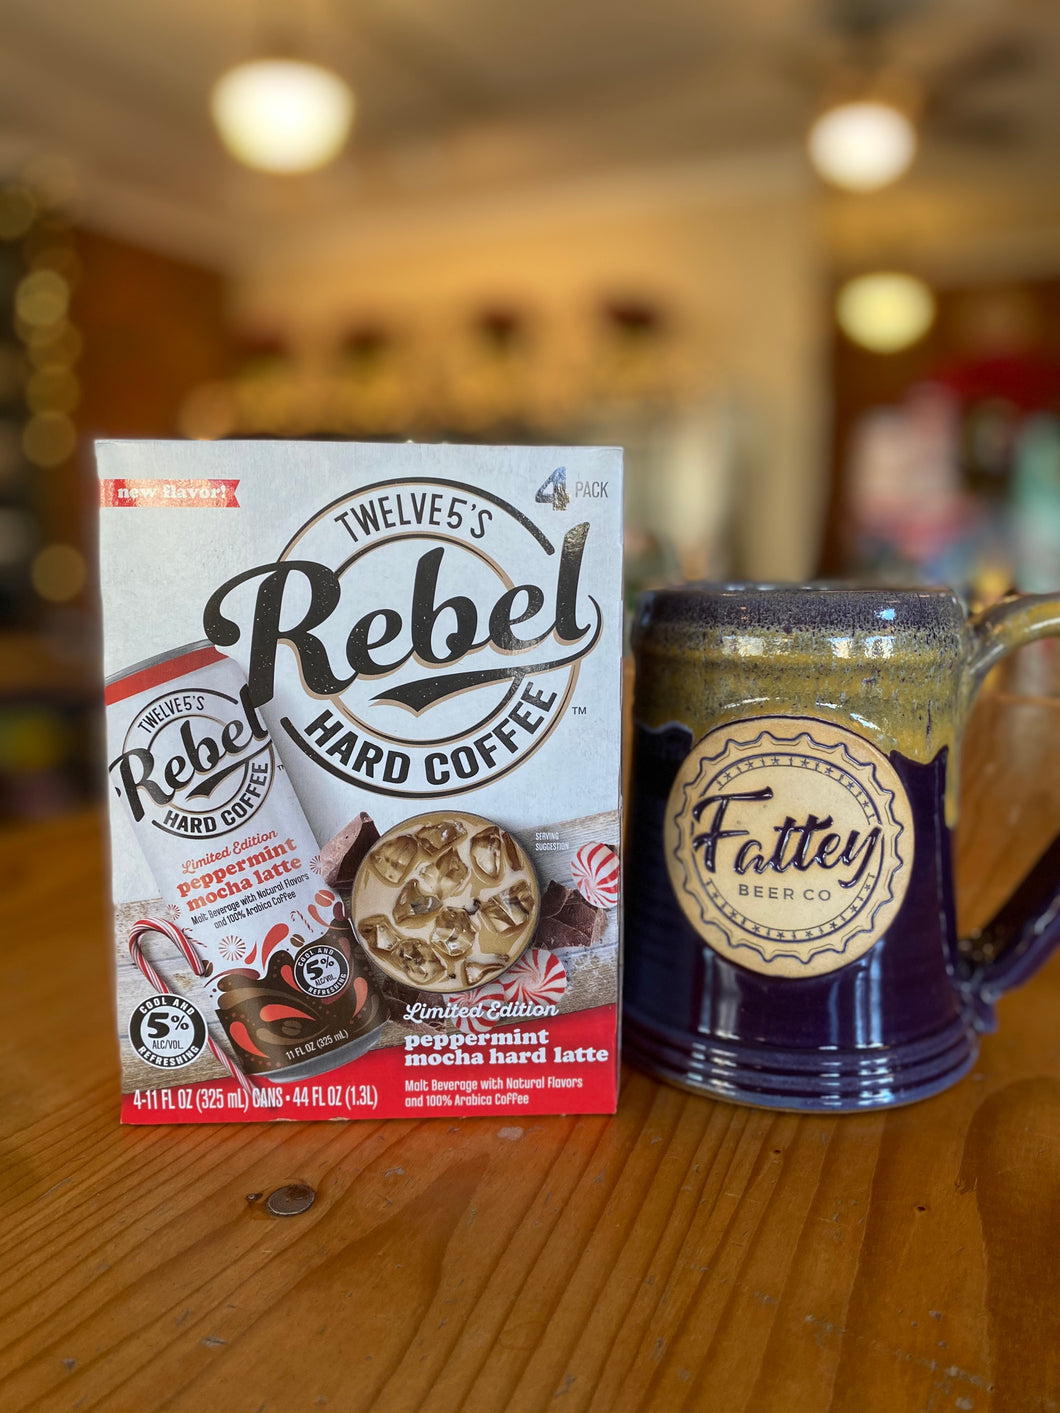 ADD TO ANY ORDER - 4 - Pack of Rebel Mocha Peppermint Hard Coffee!